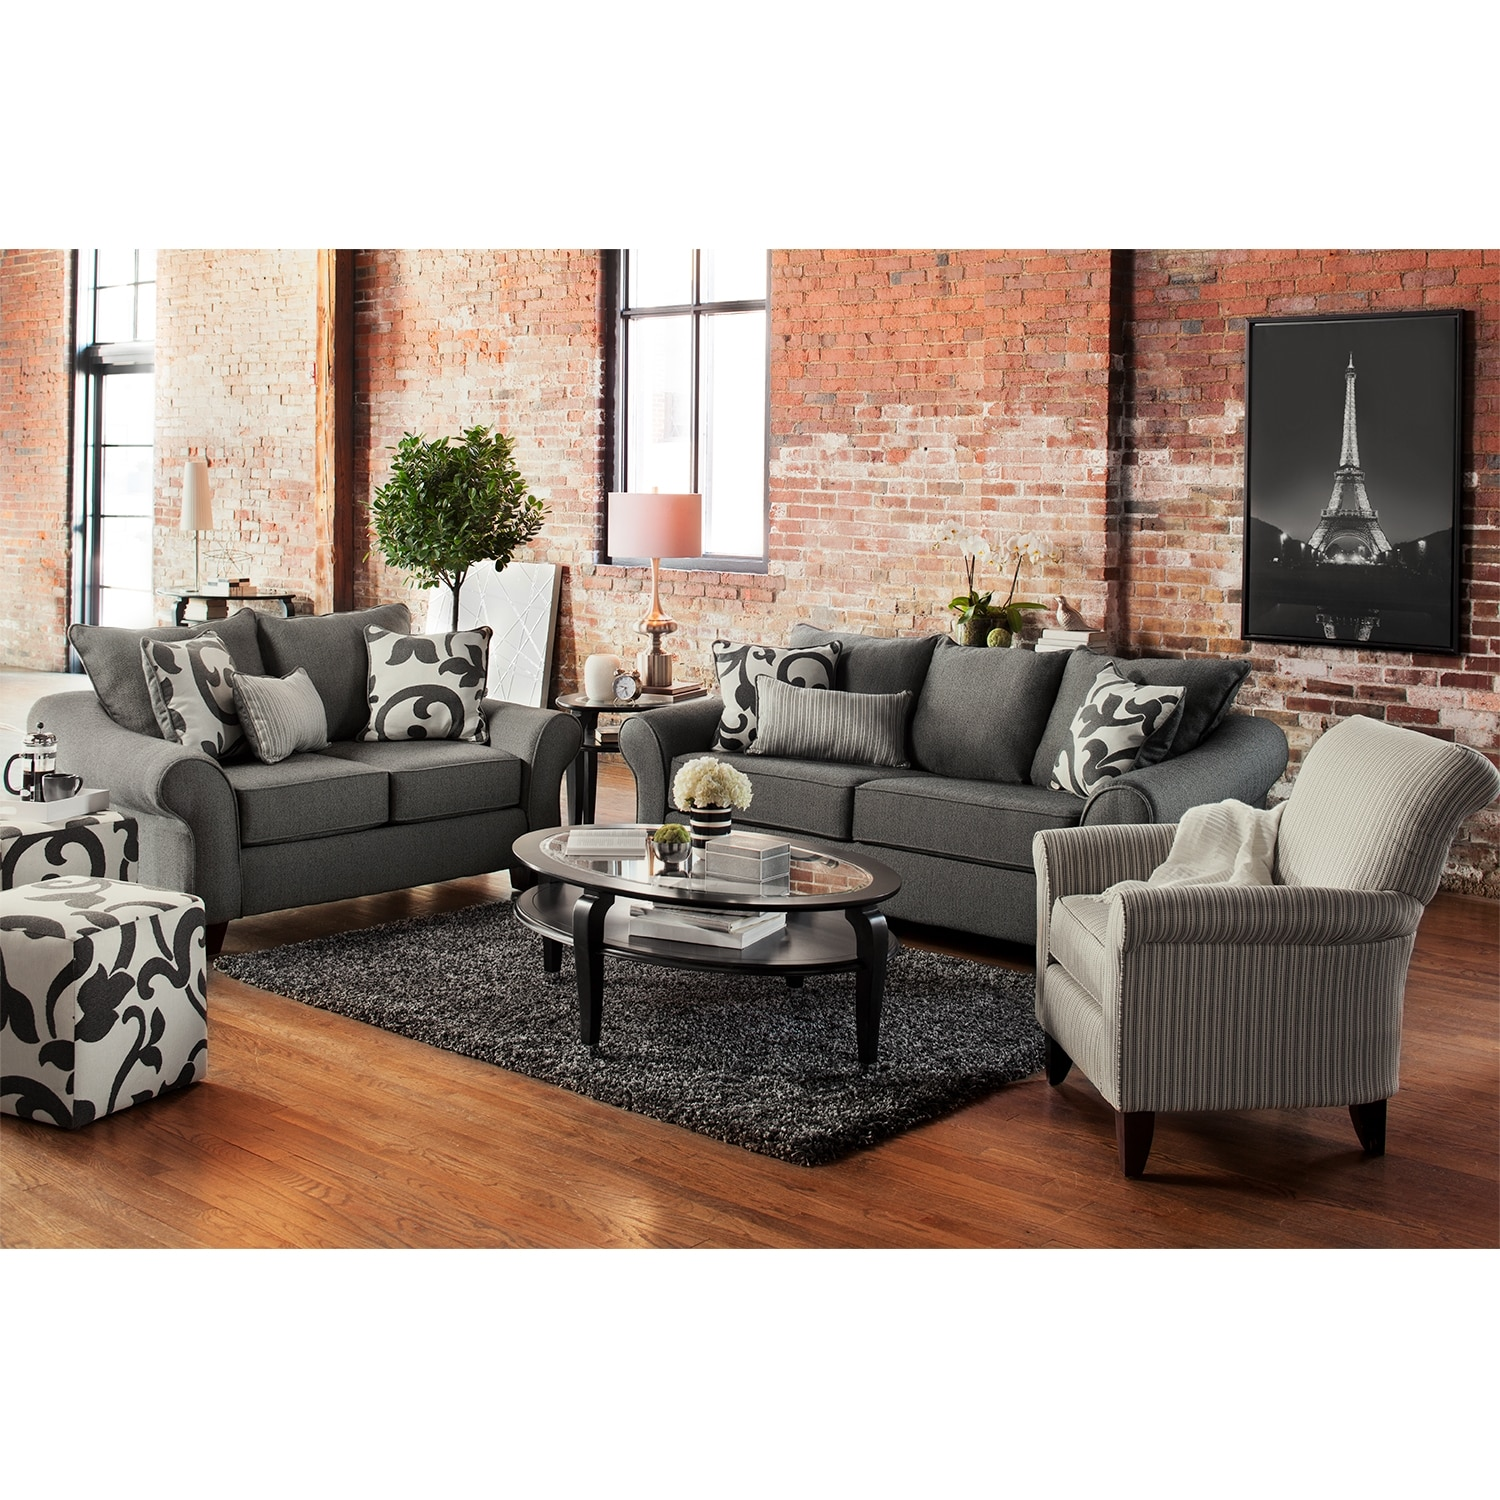 Colette sofa gray value city furniture for Living room furniture pictures